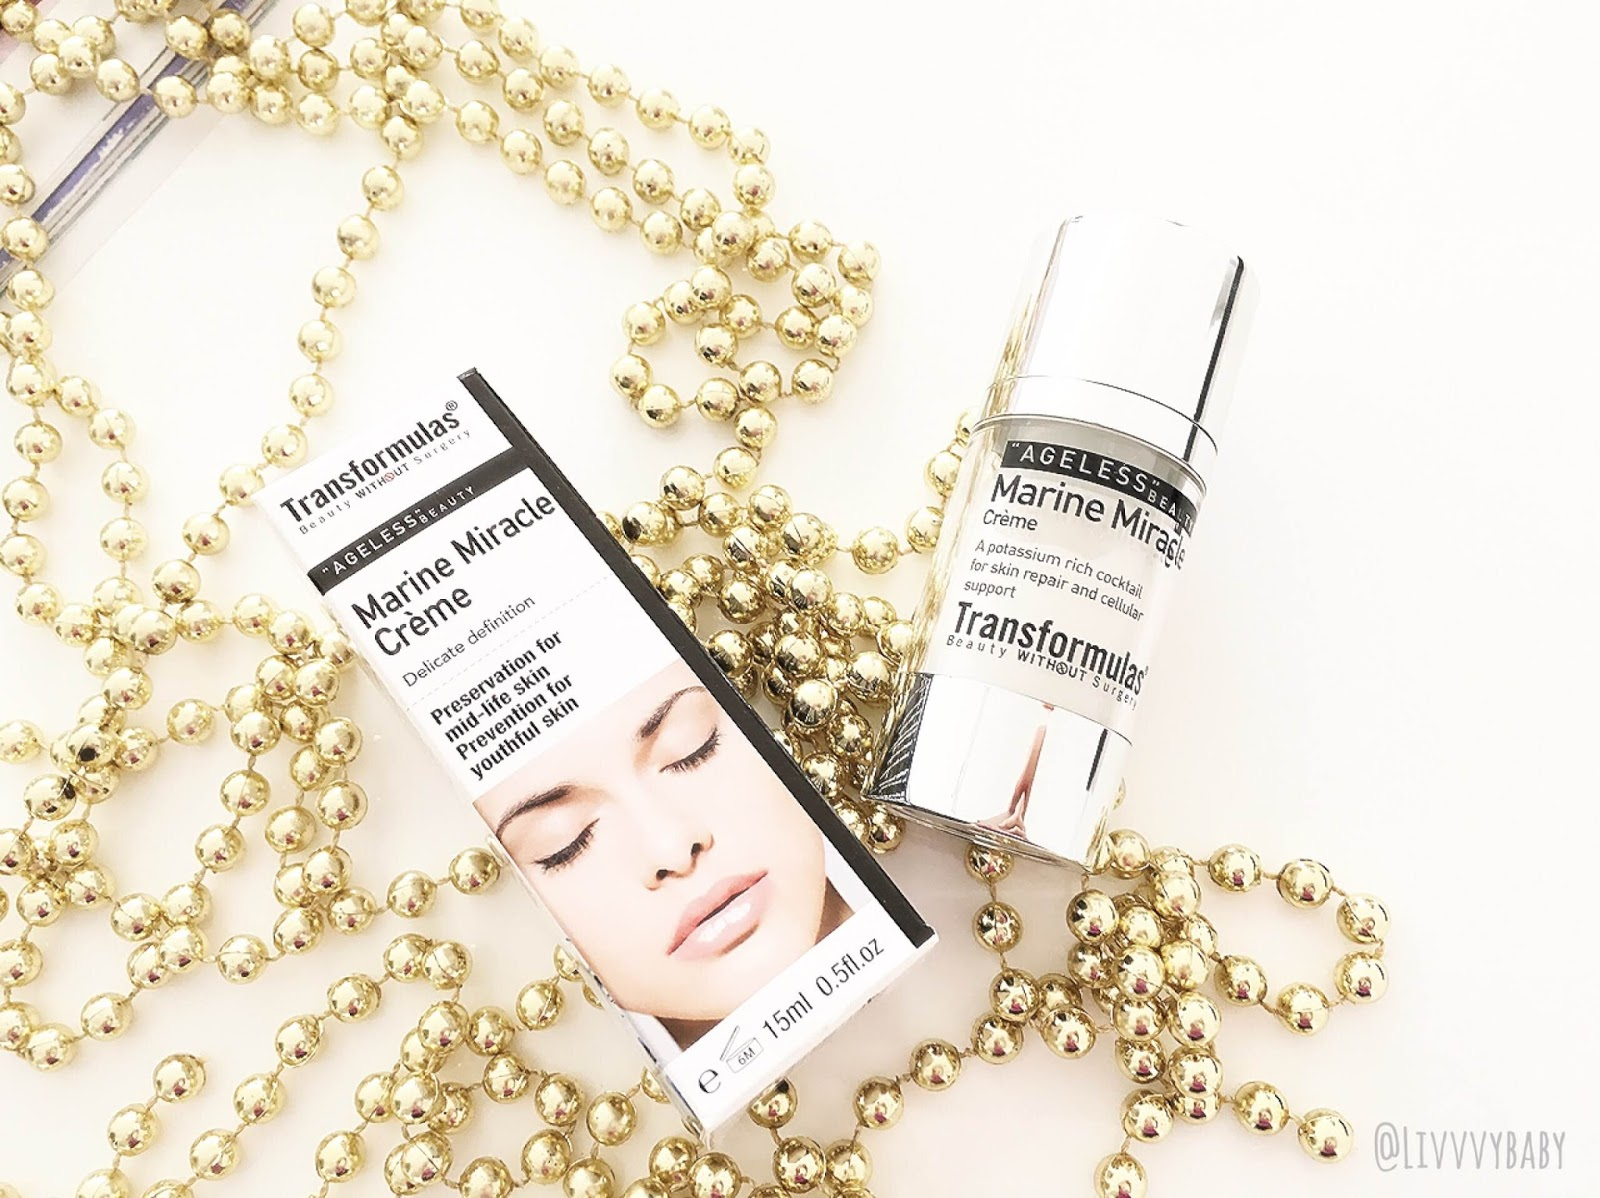 L I V I A: MY TOP SKINCARE PICKS FOR AGELESS BEAUTY FEAT